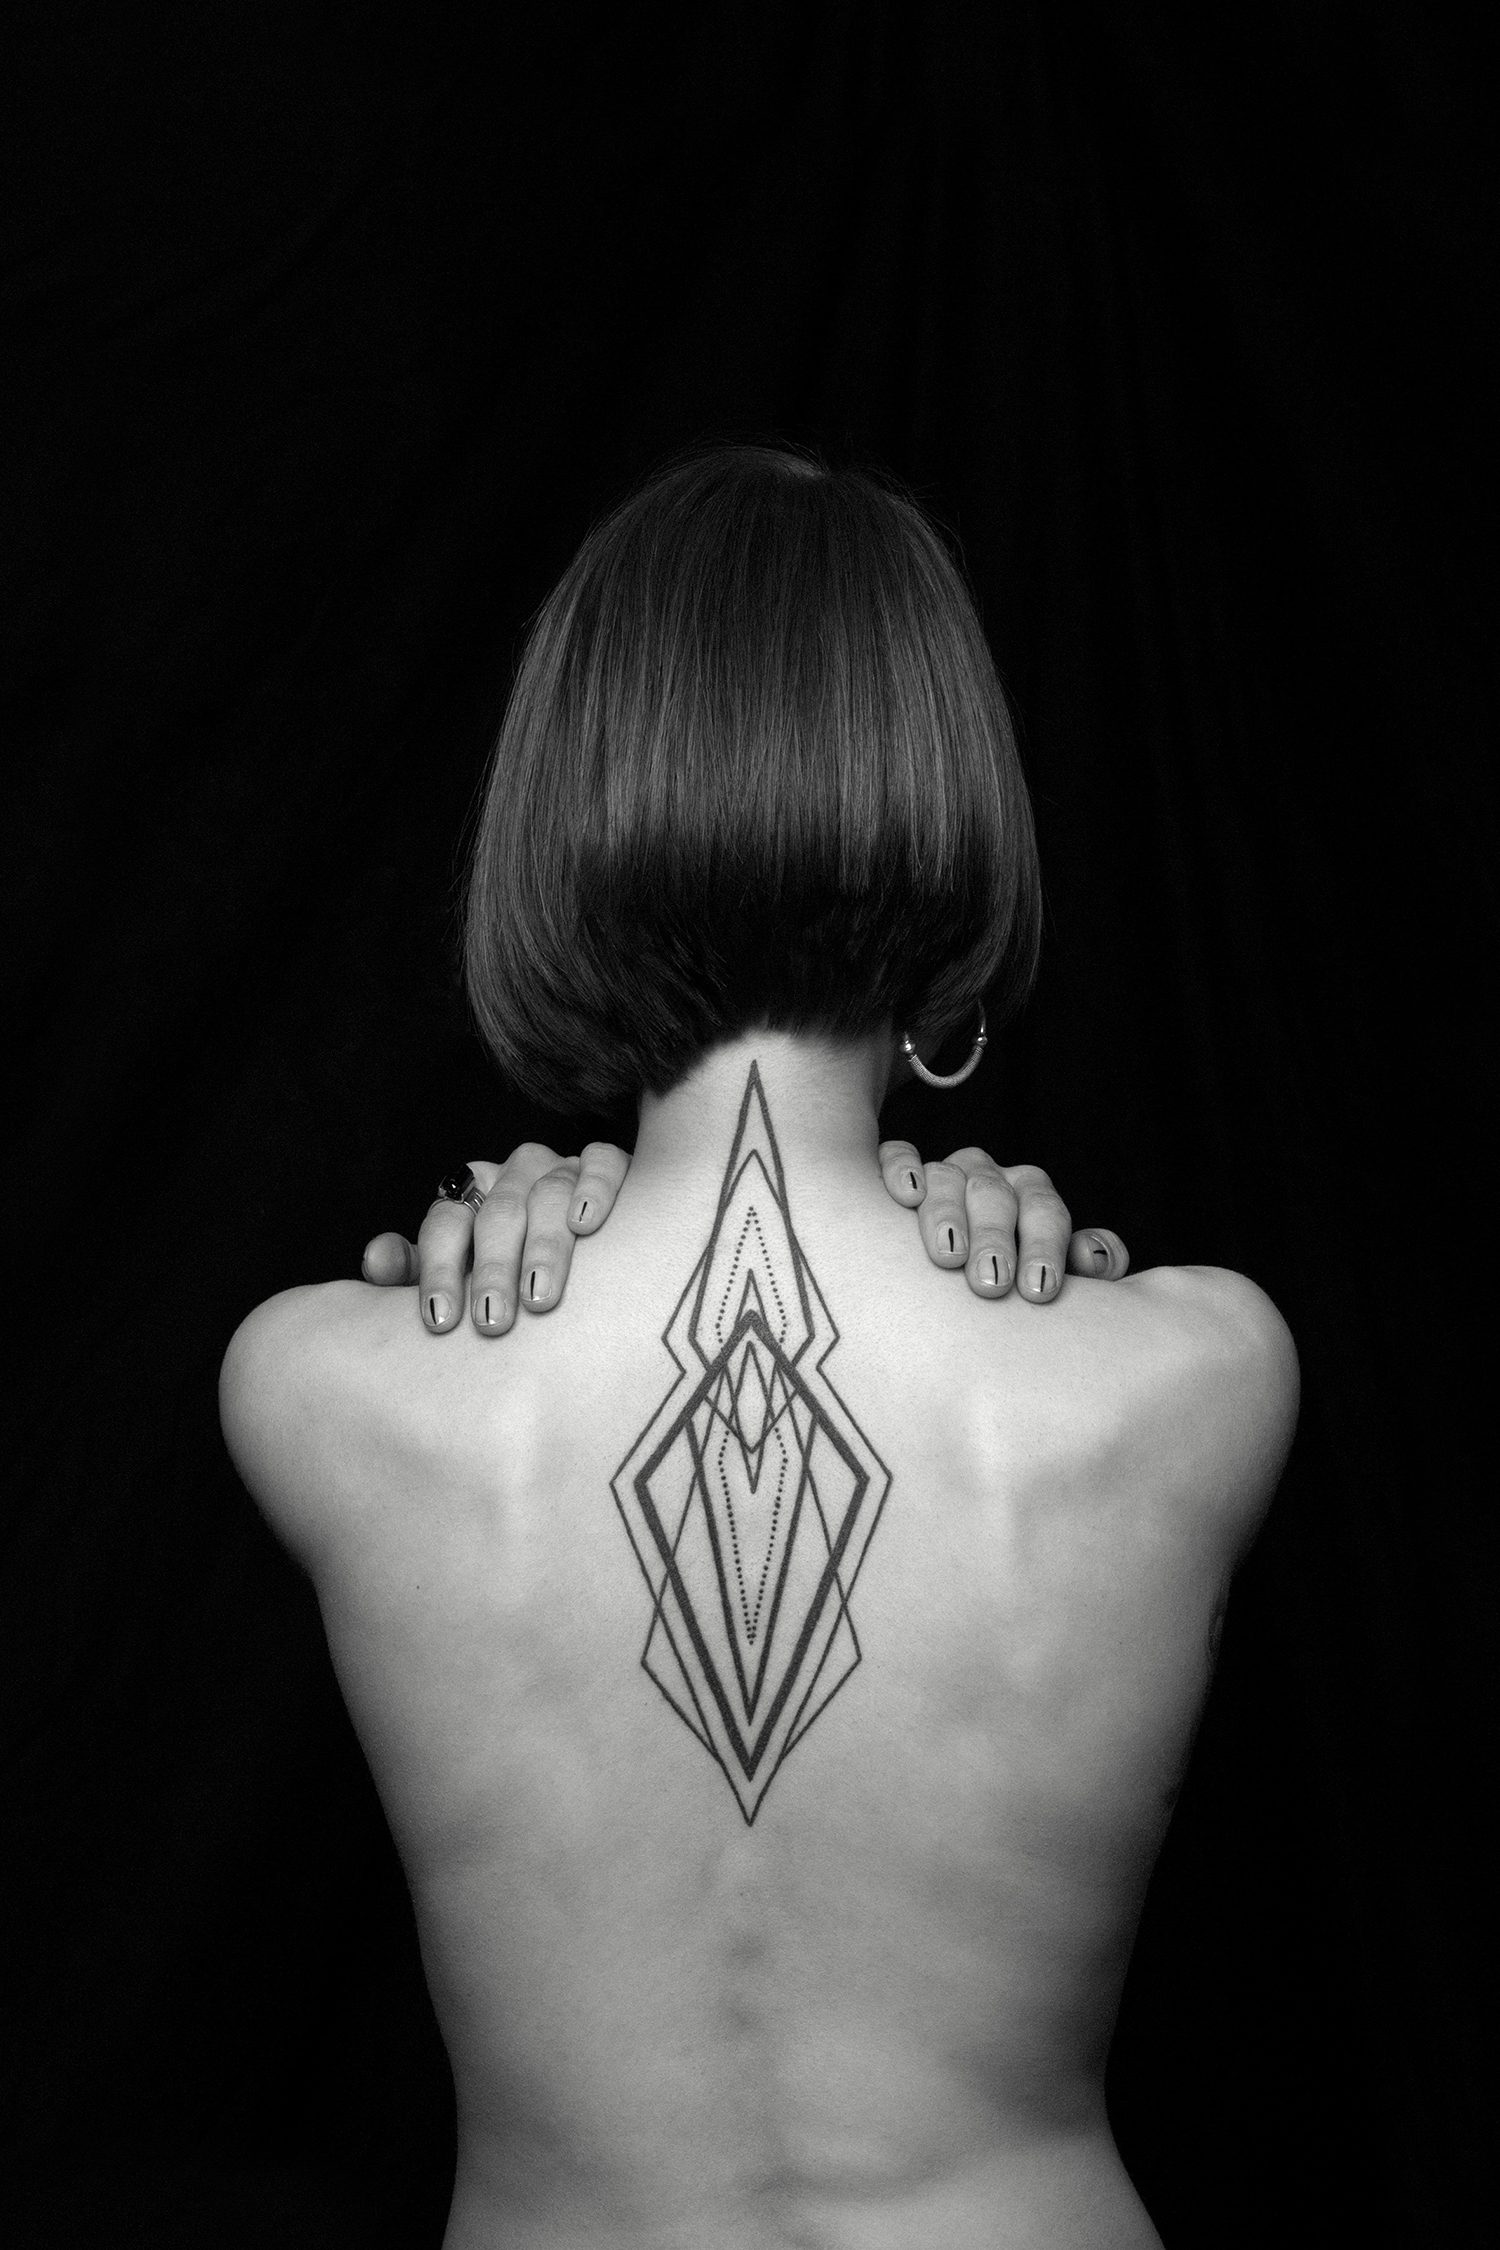 geometric tattoo on back by chaim machlev. photo © erik weiss